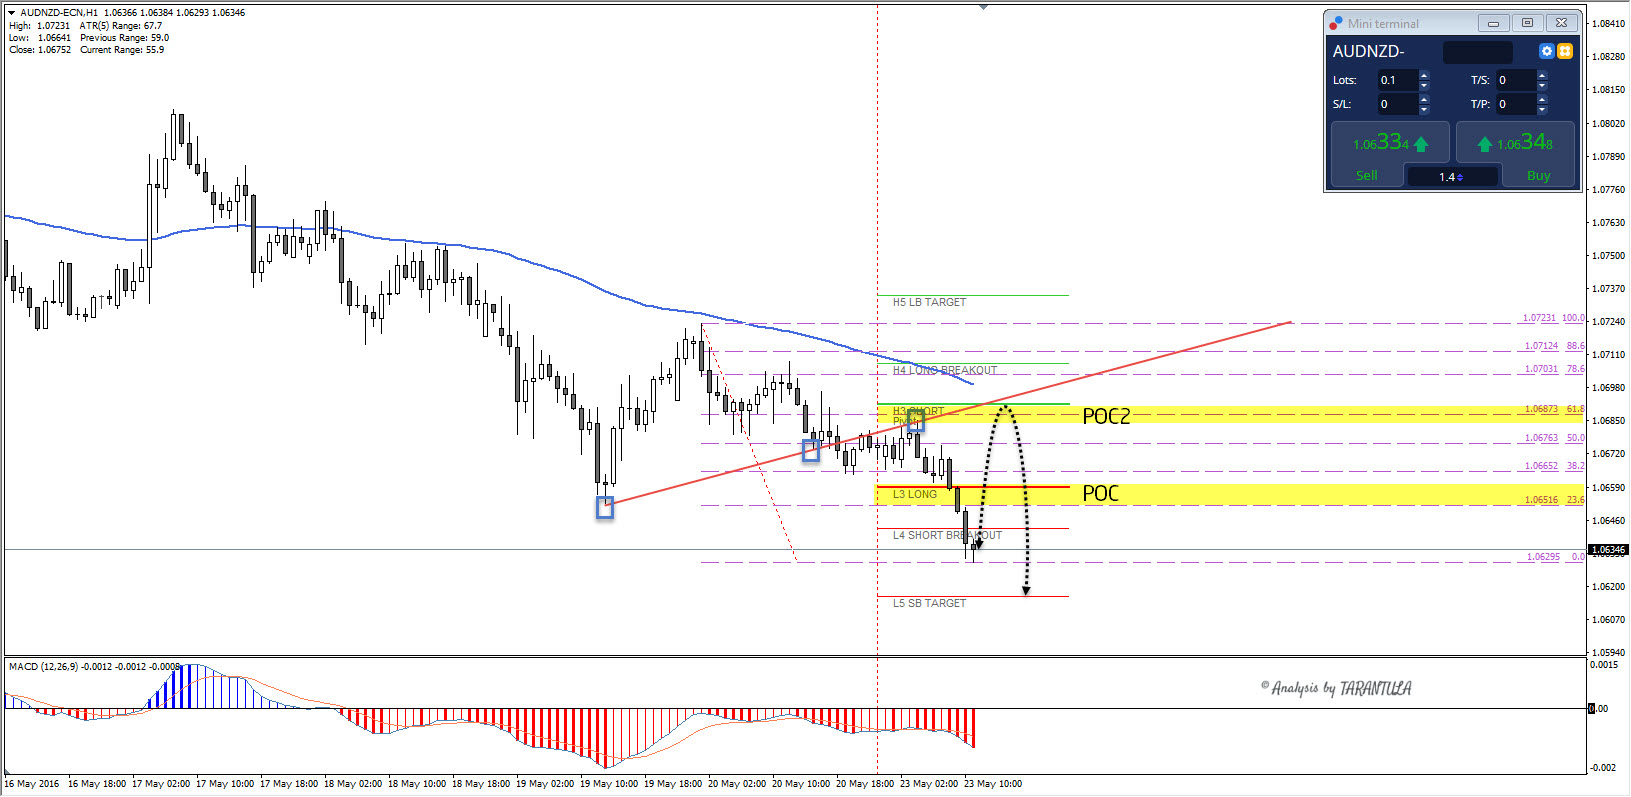 AUDNZD showing both technical and fundamental alignment